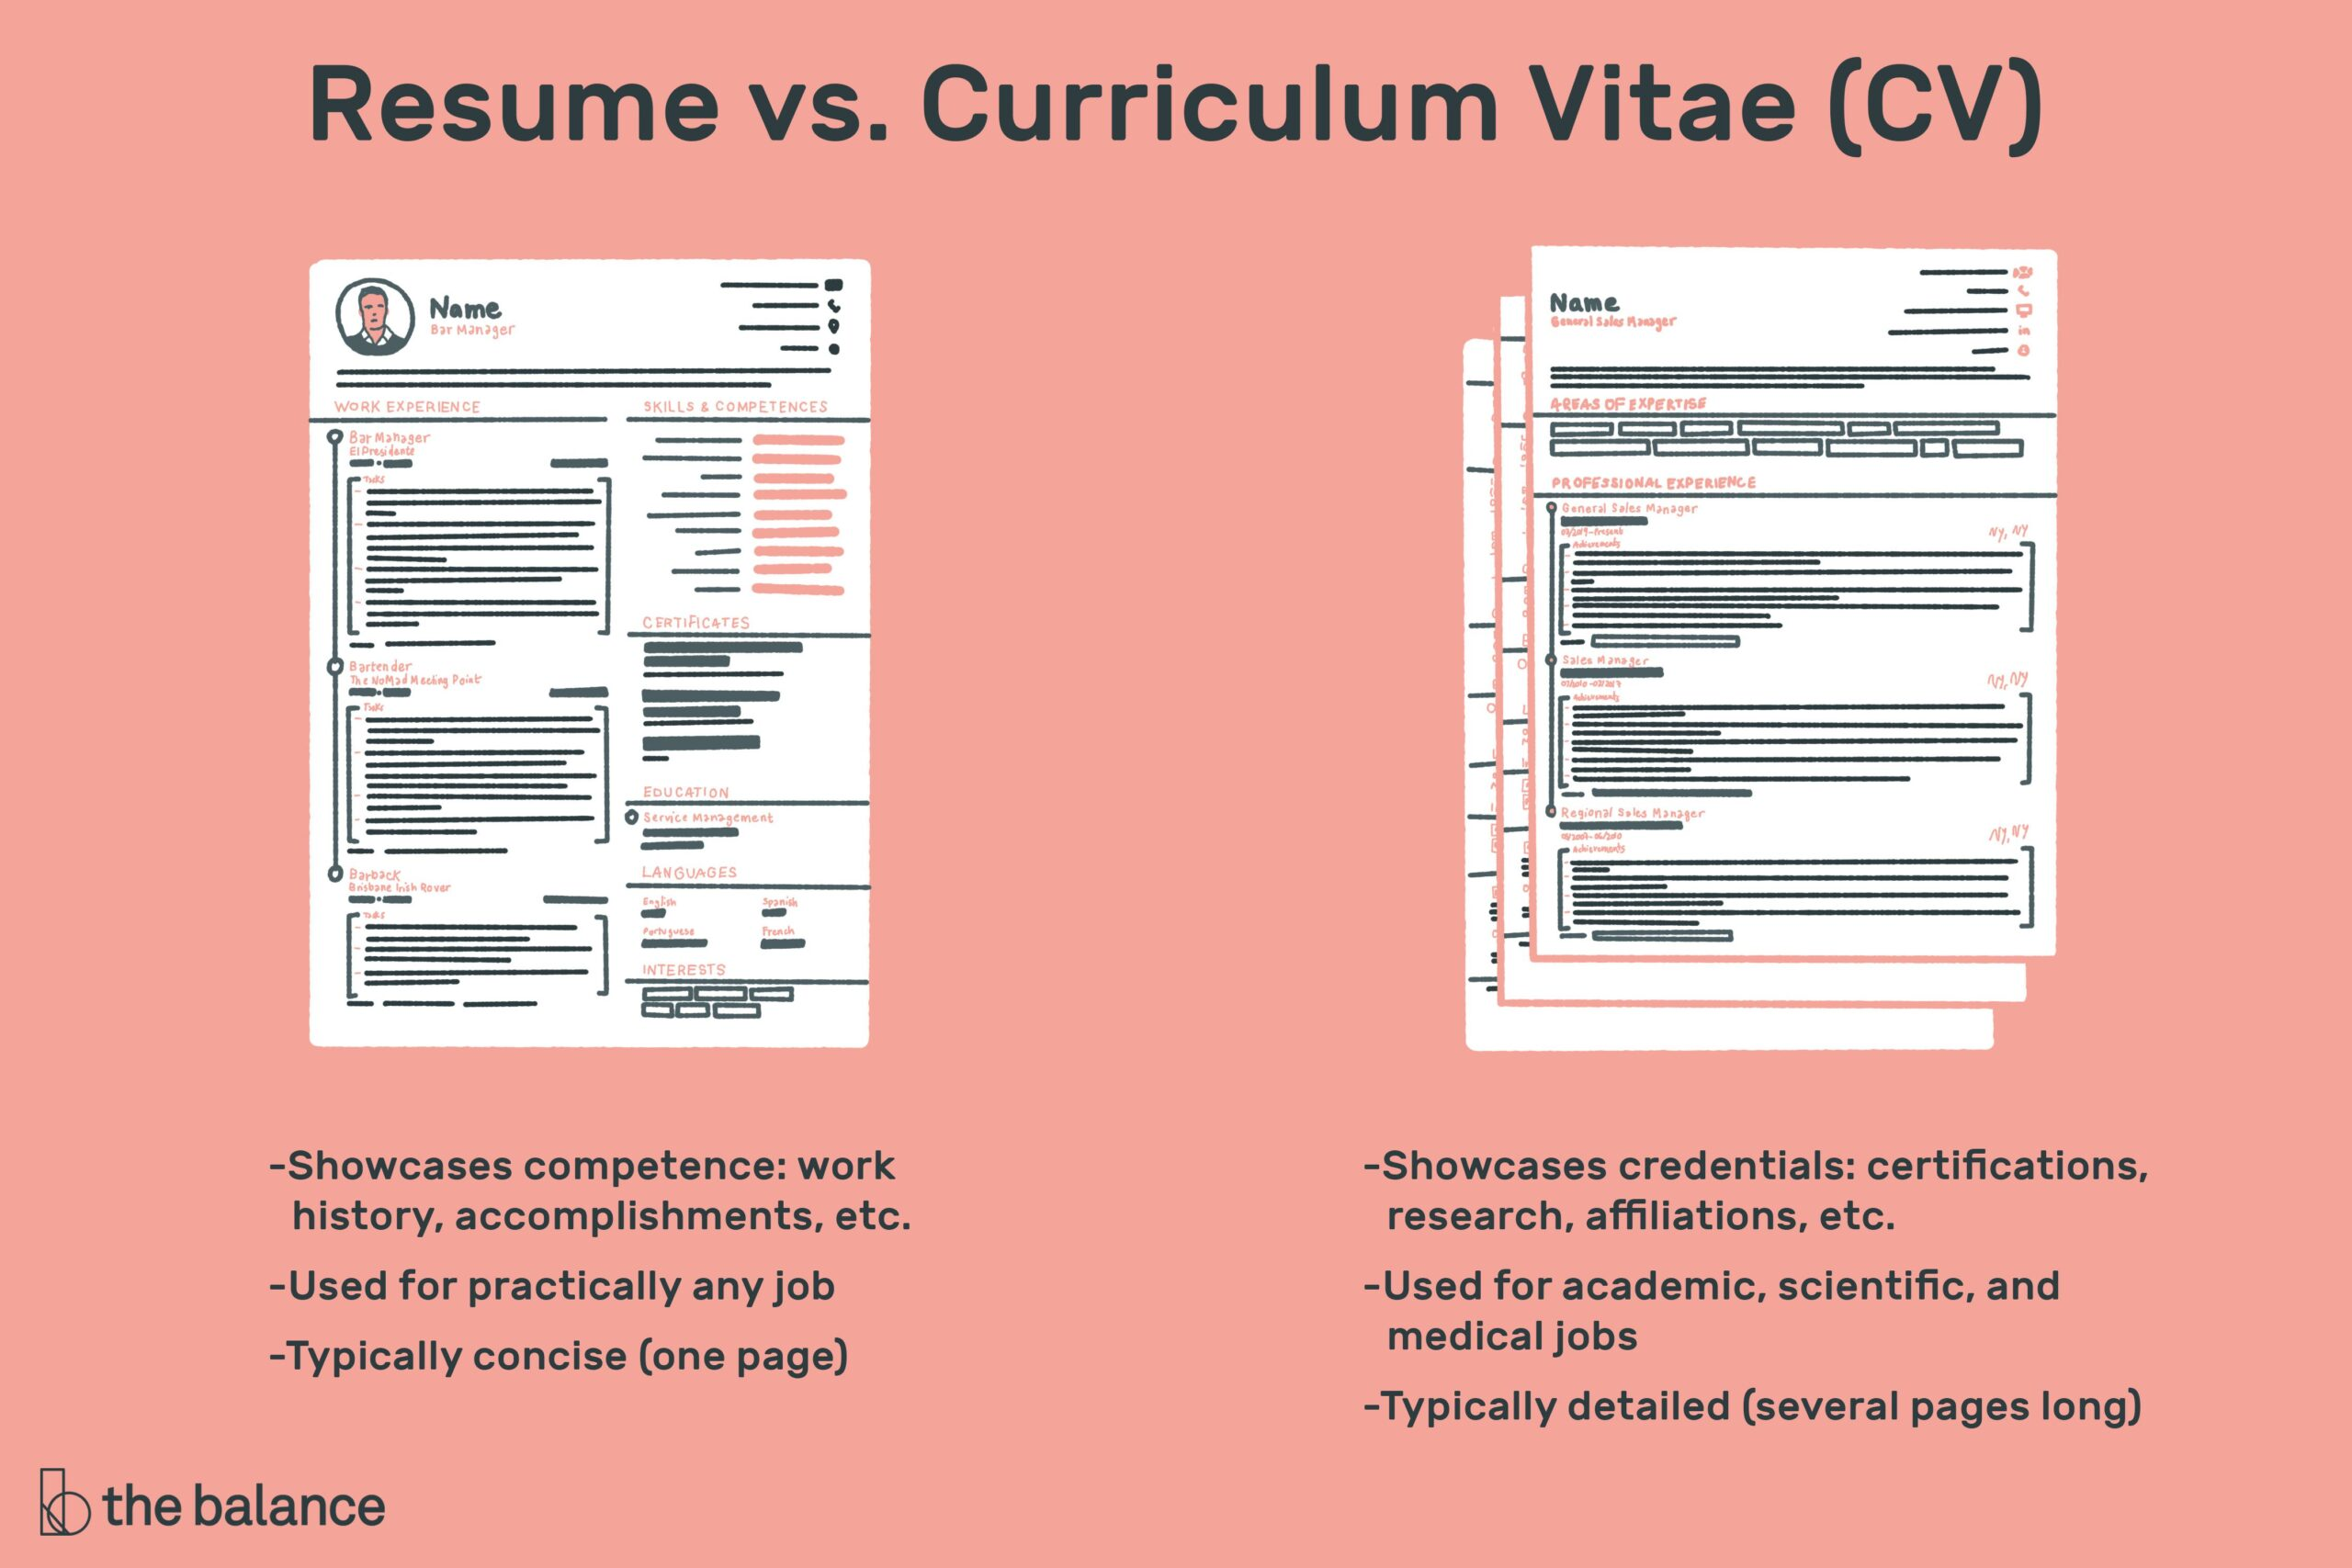 the difference between resume and curriculum vitae job bullet points cv vs final order Resume Resume Job Bullet Points